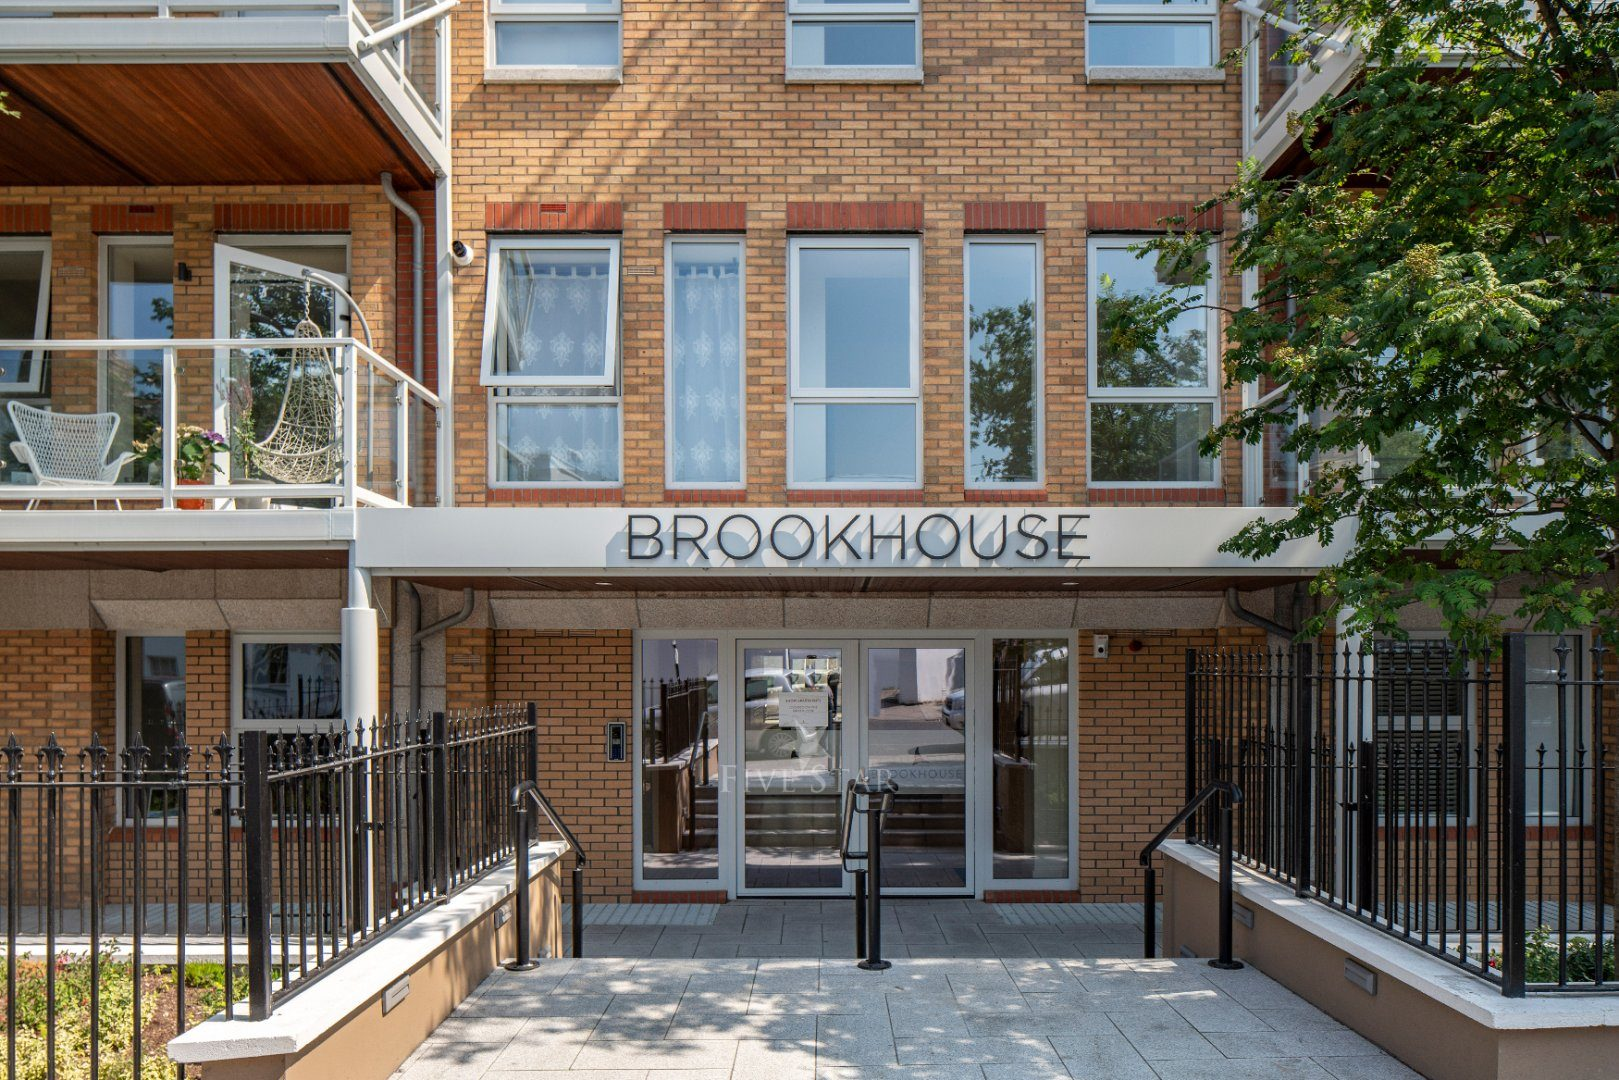 Brookhouse Apartment photo 3